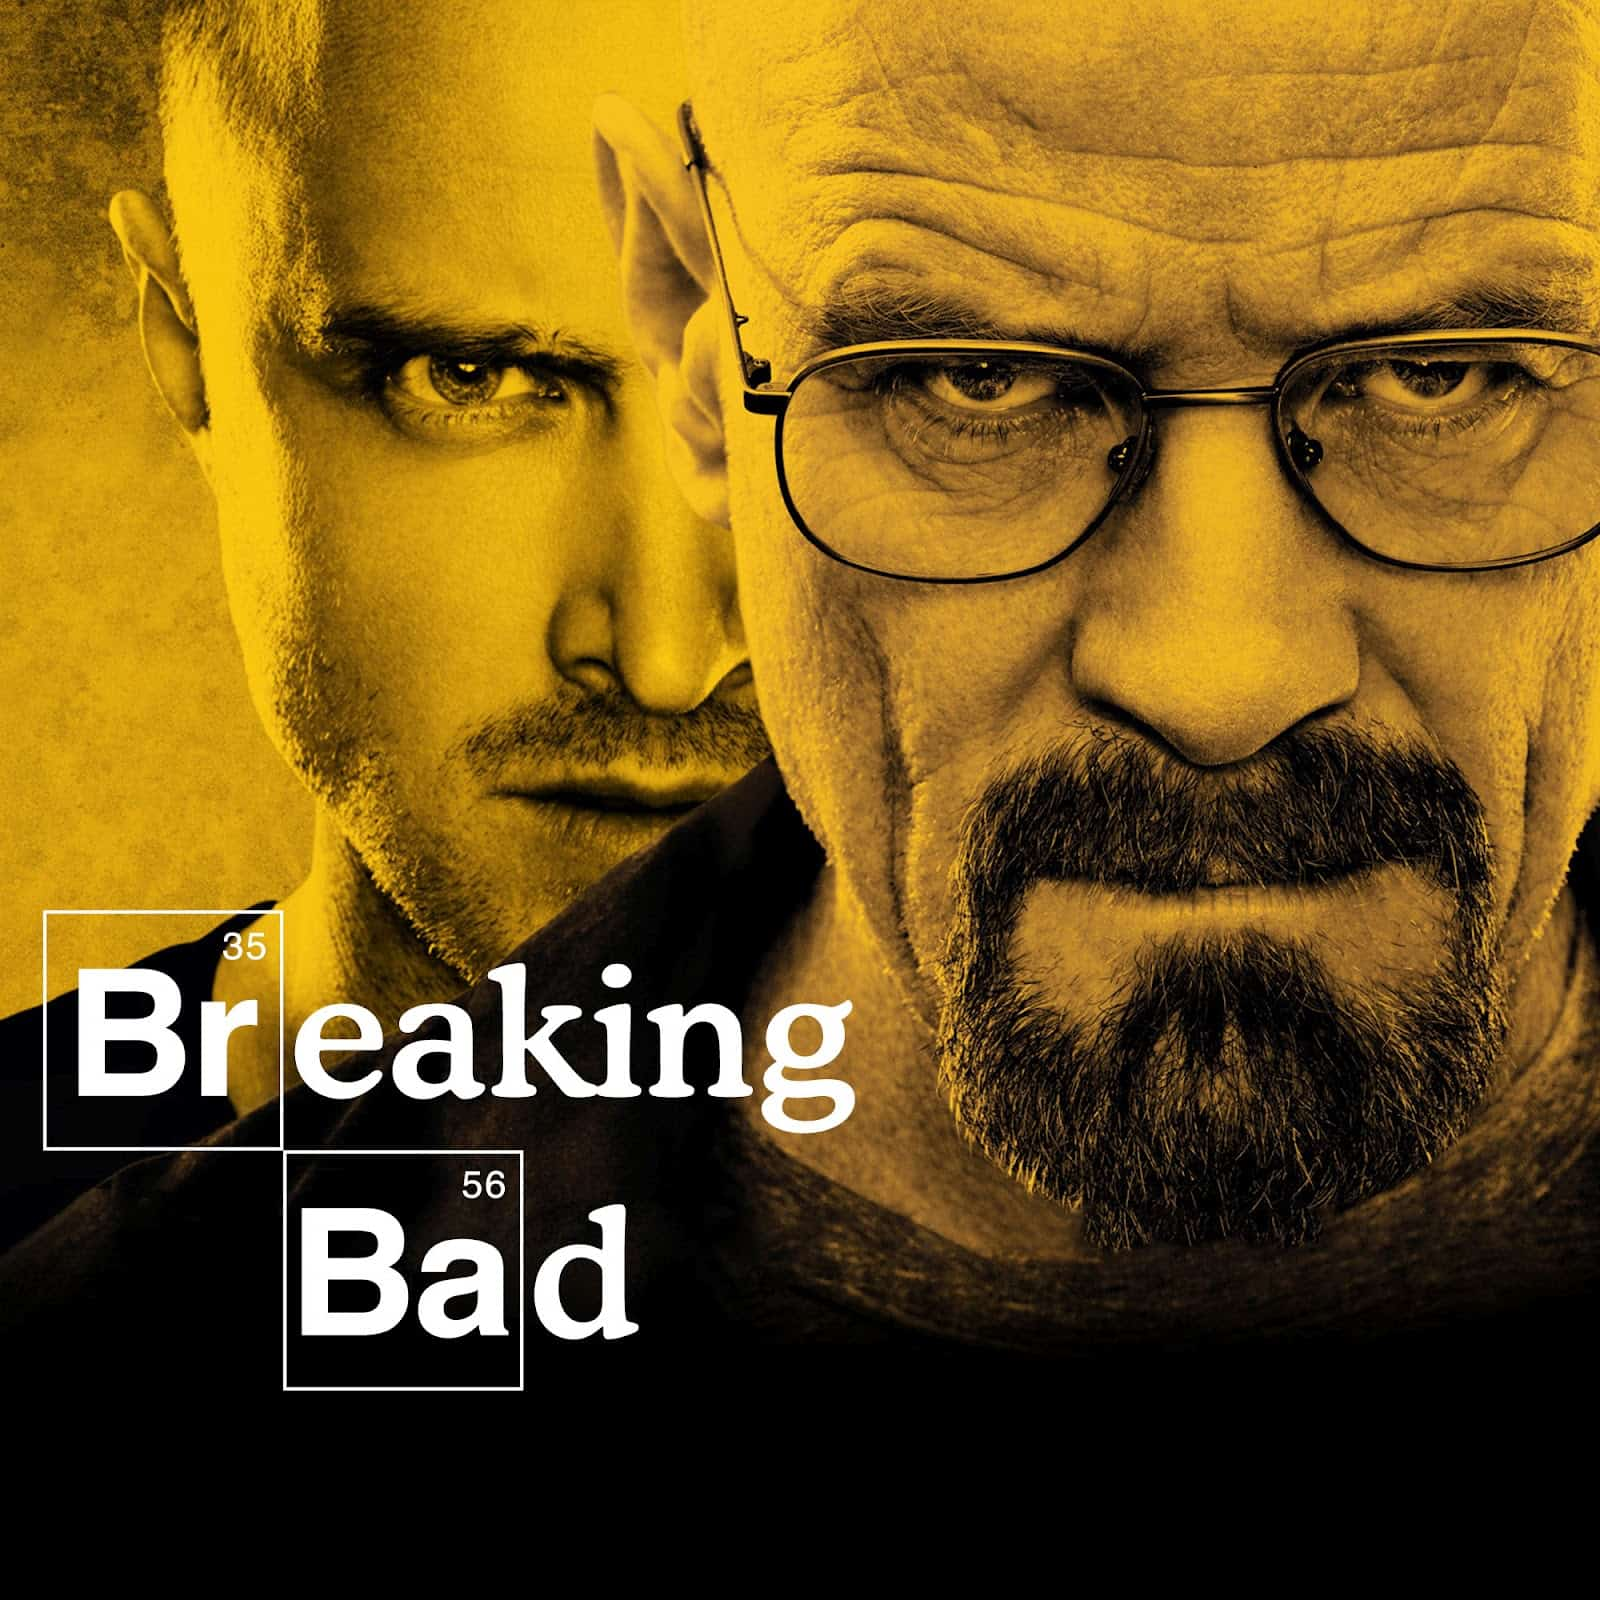 TV shows to learn English - Learn English through Breaking Bad